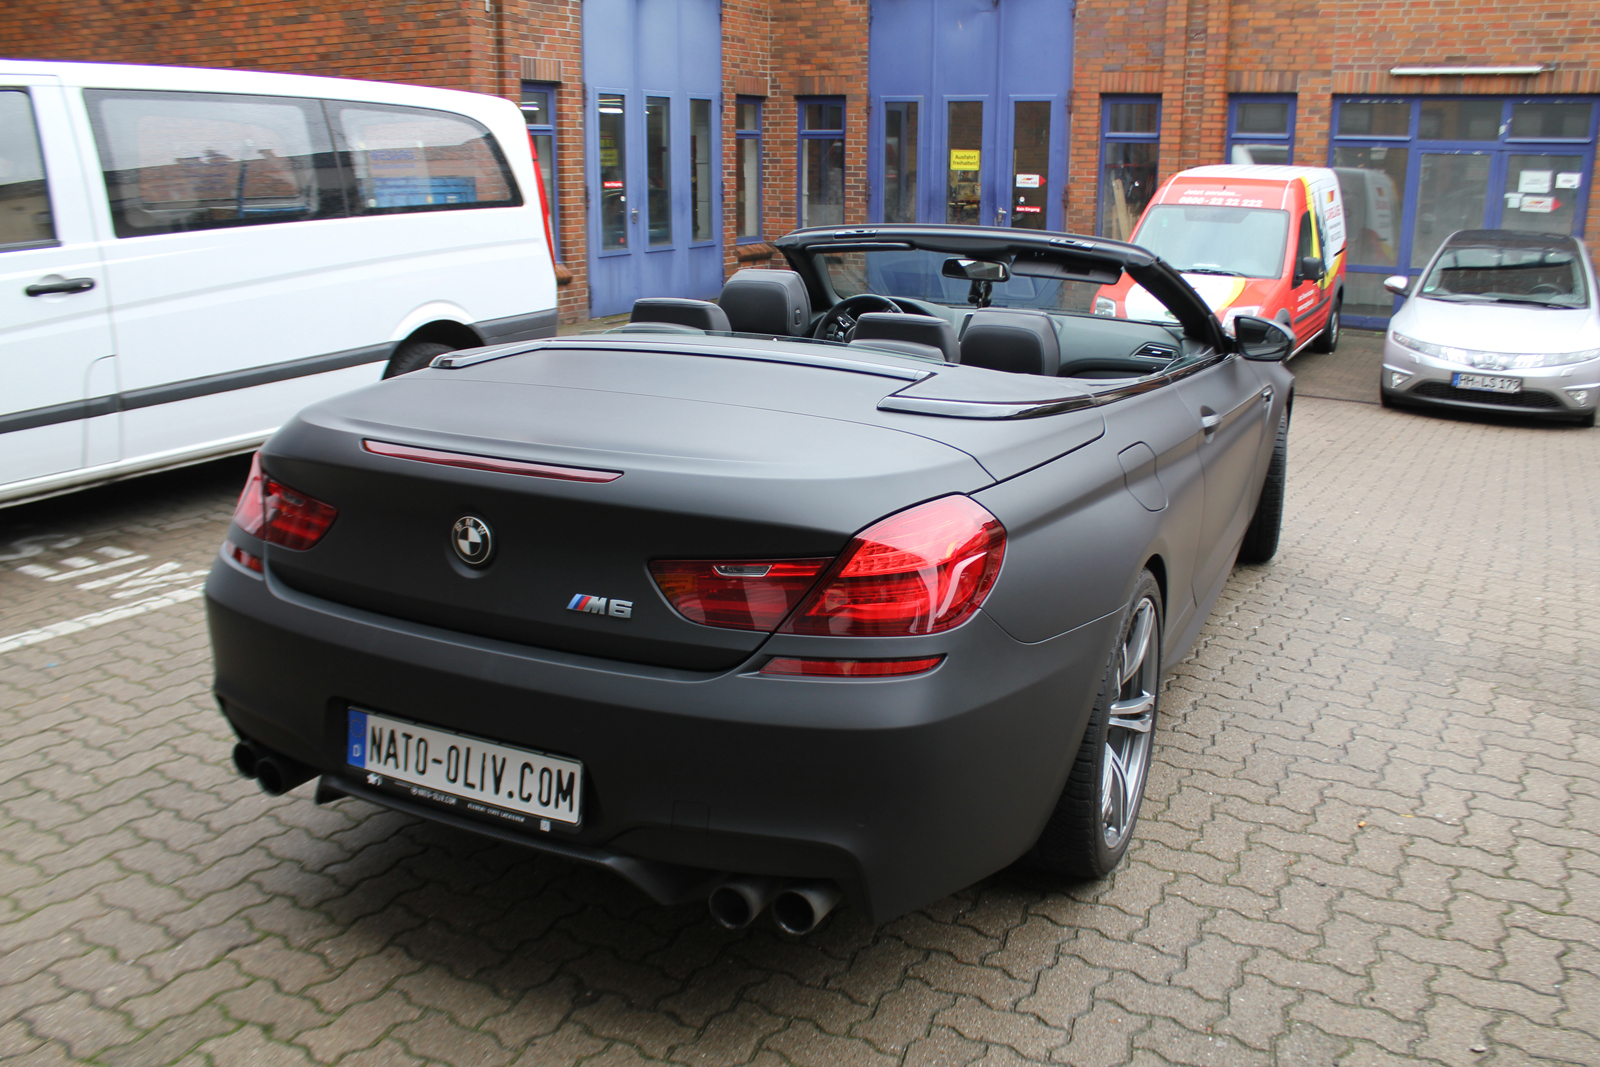 Auto Folierung Car Wrapping BMW M6 Cabriolet Schwarz Matt Carbon